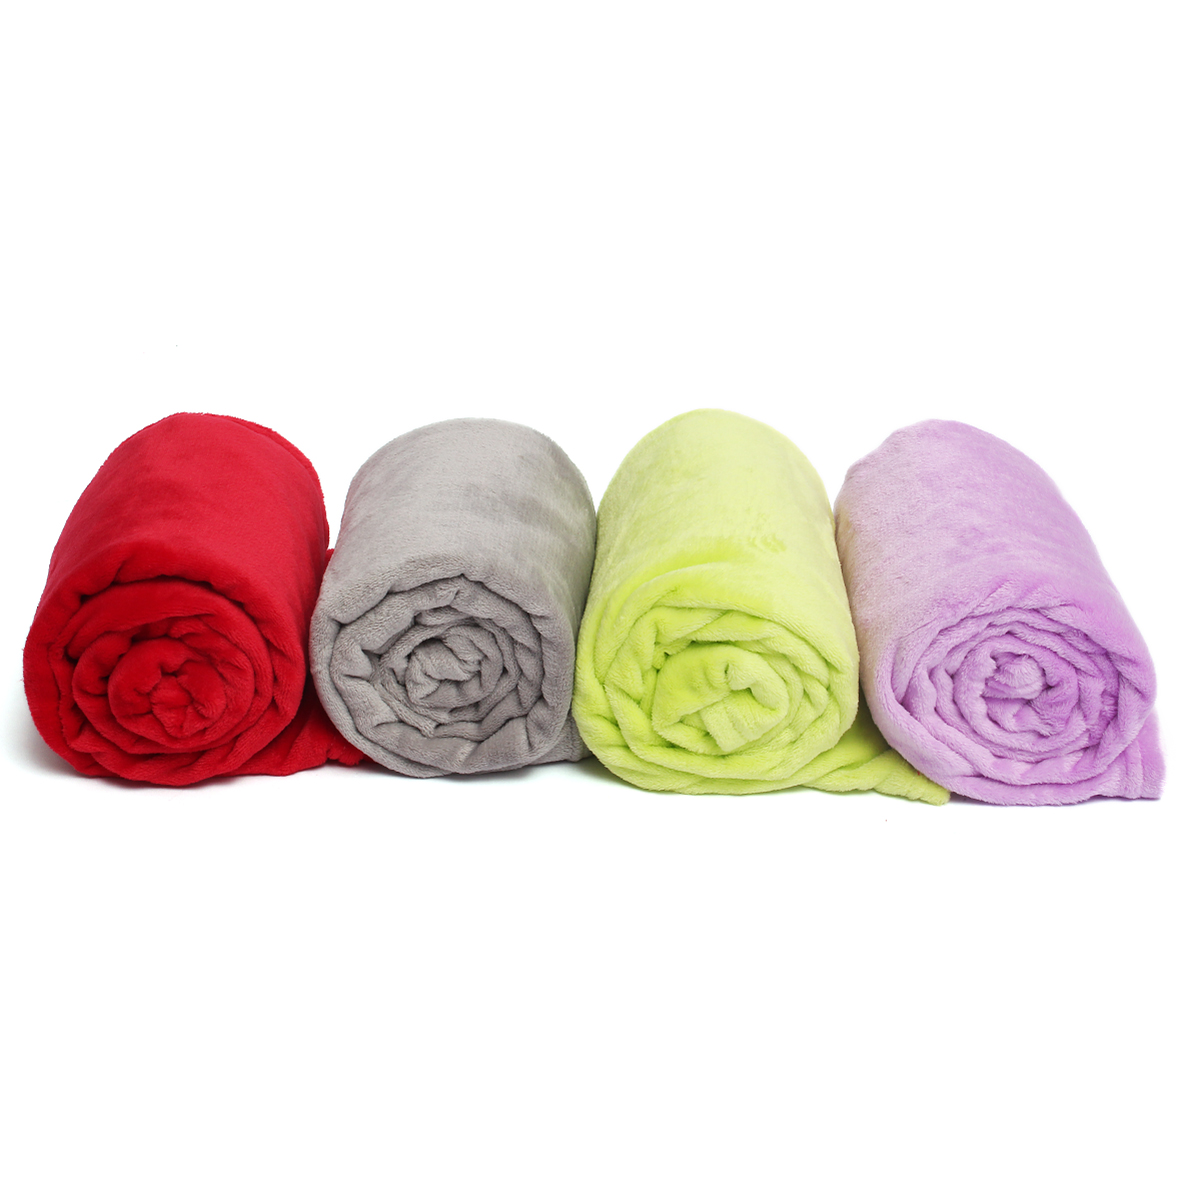 New Super Soft Luxurious Fleece Throw Blanket 3 Solid Colors Twin-size Warm